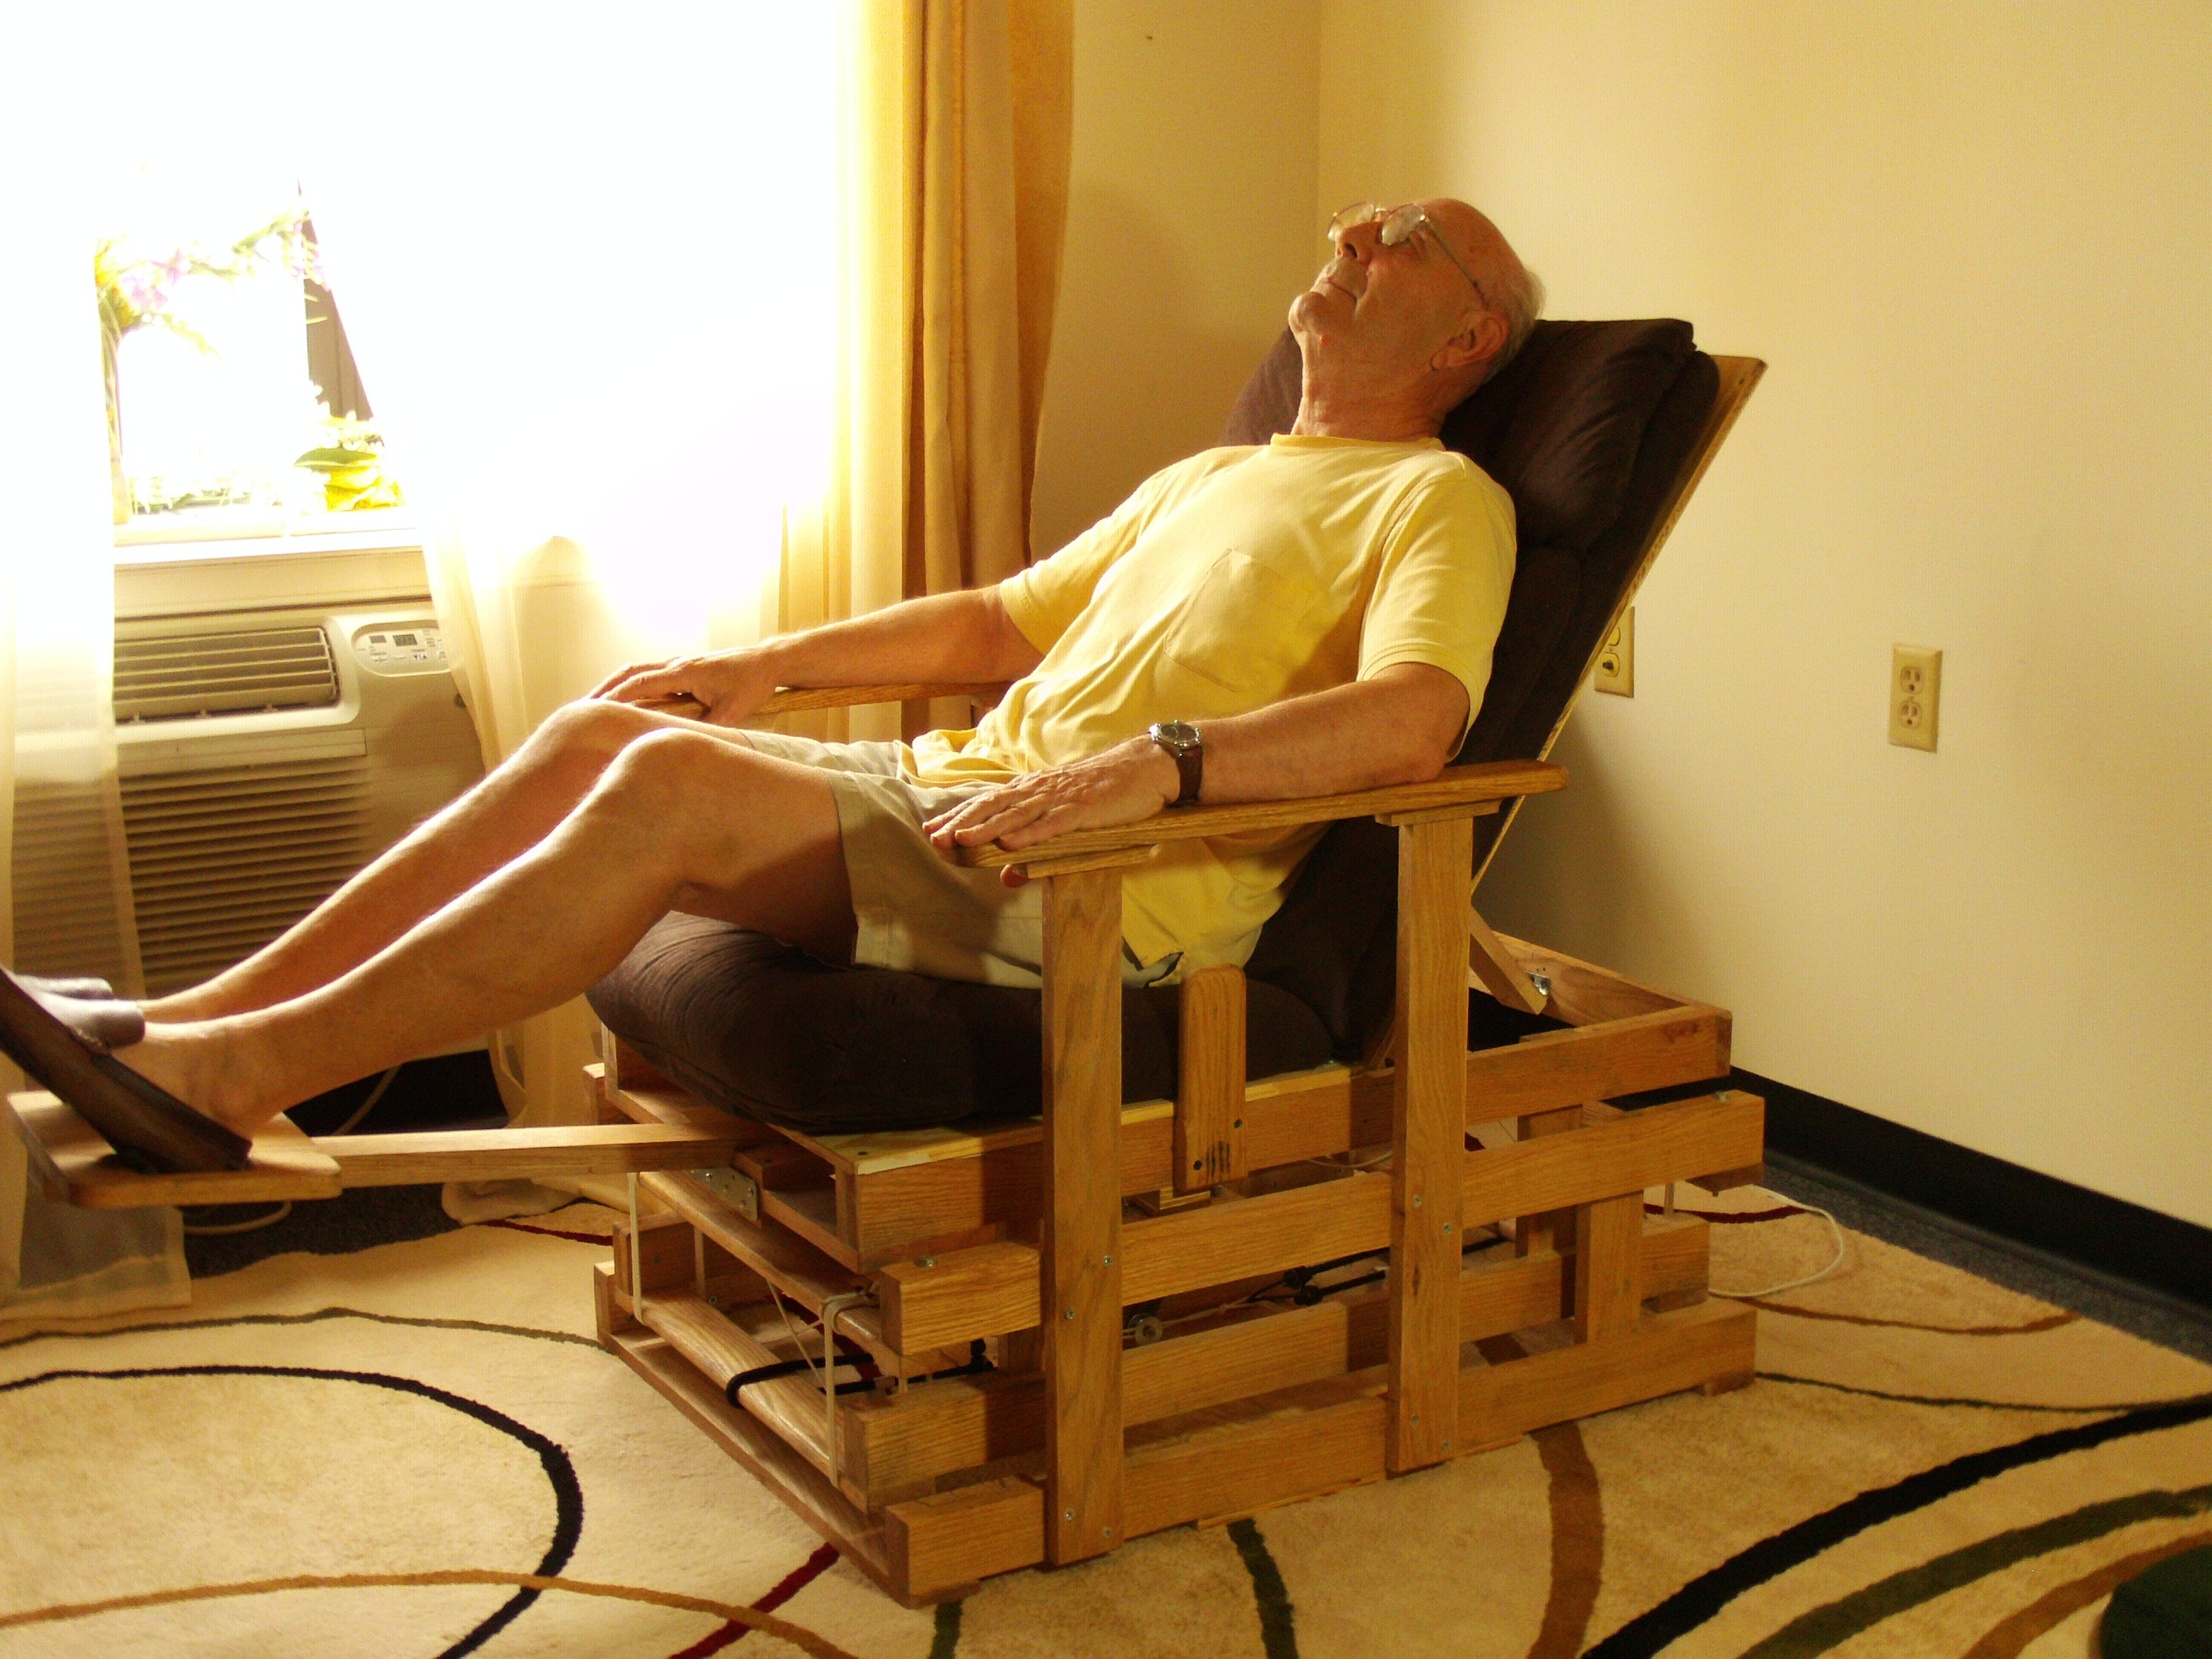 Transfomable Gliding Chair with Electric Actuator